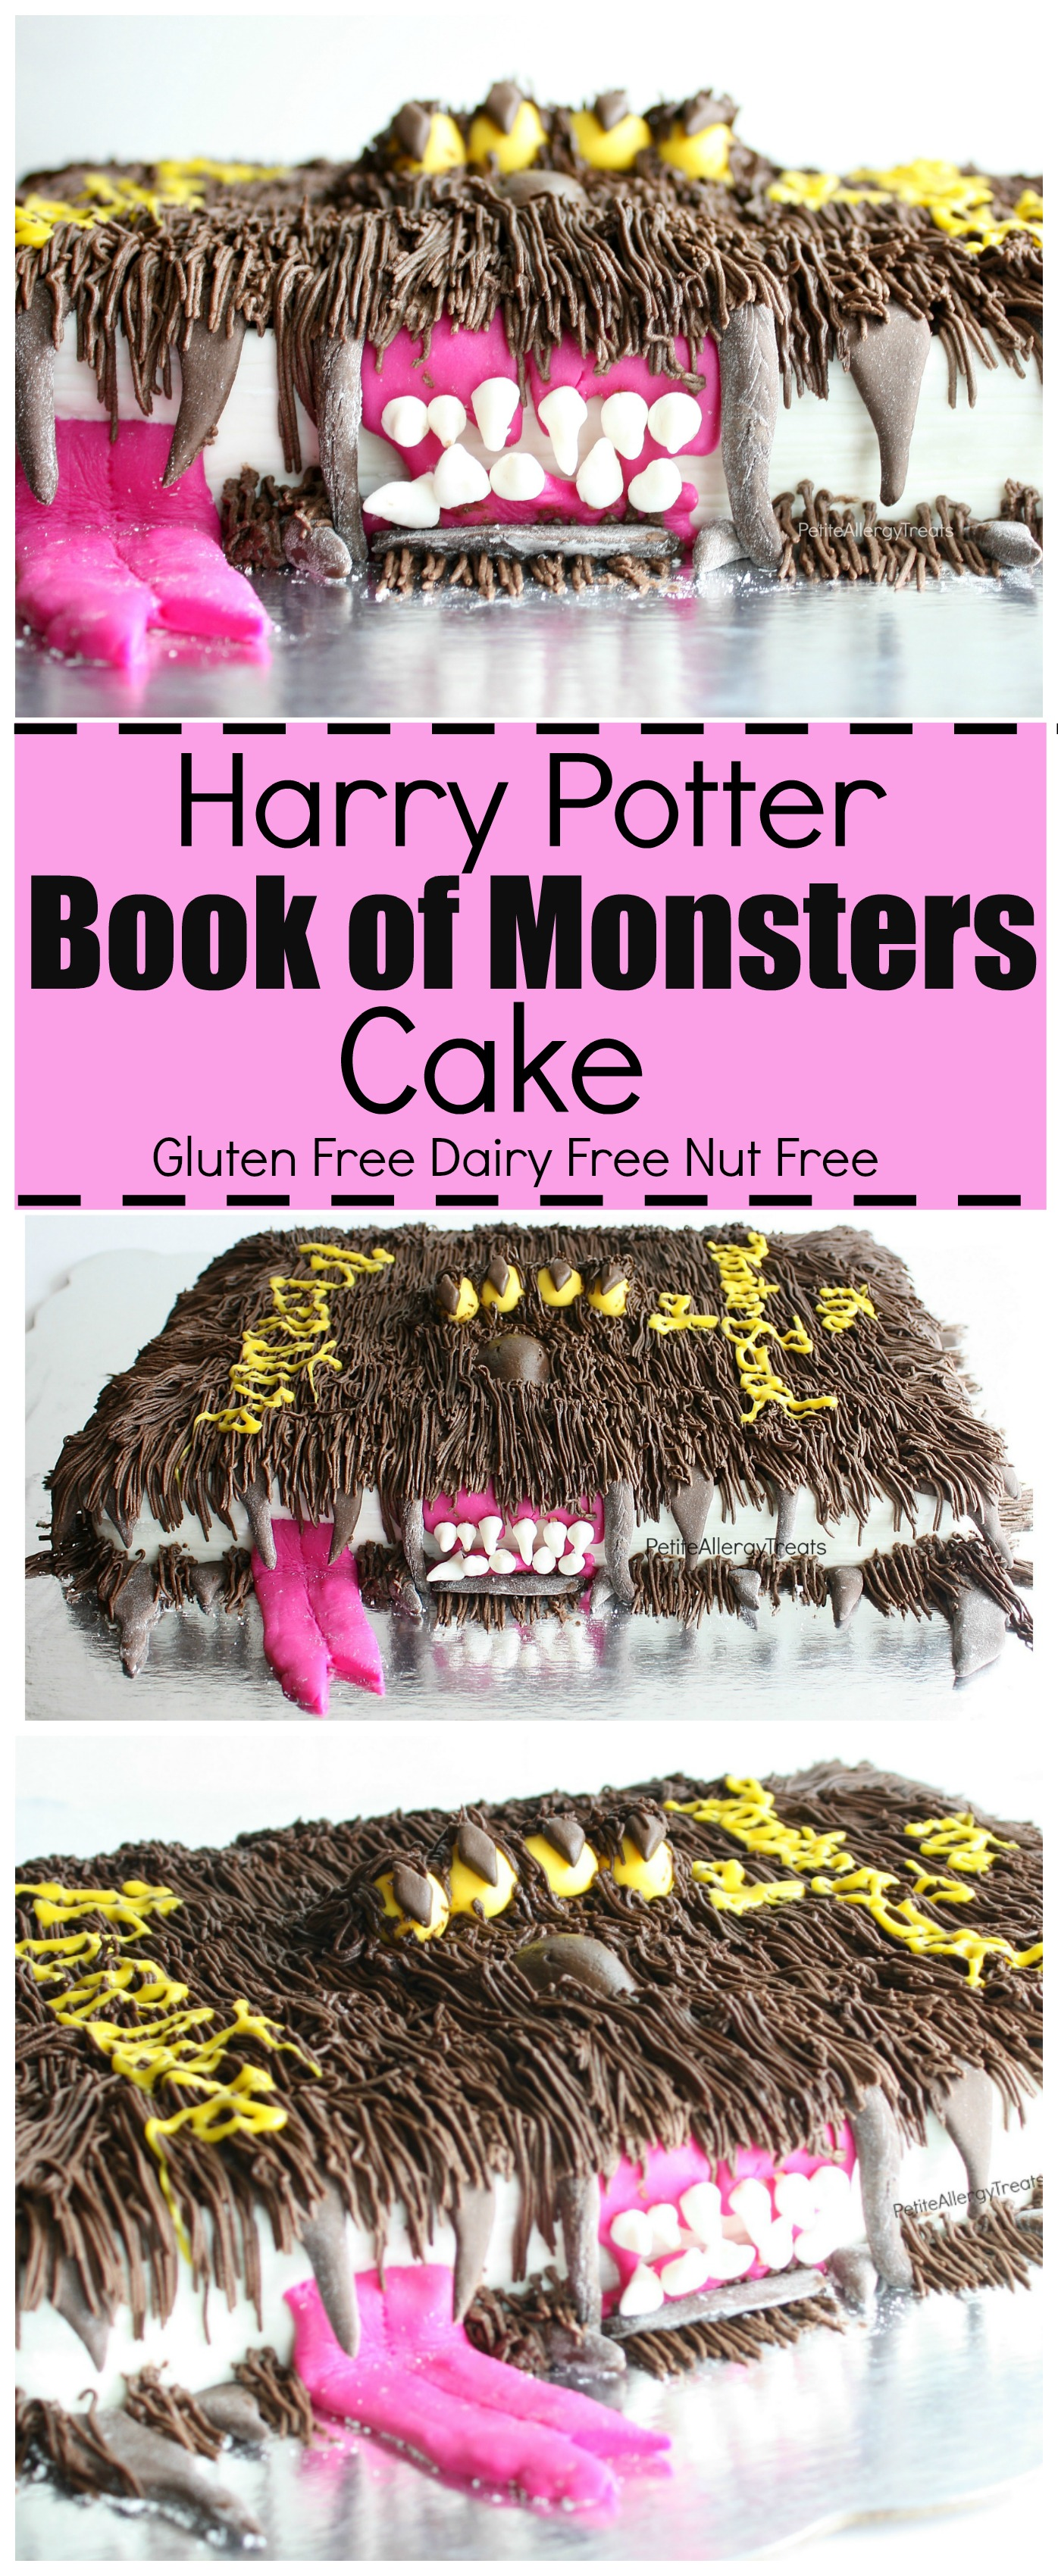 Gluten Free Harry Potter Monster Book of Monsters Cake recipe (dairy free egg free nut free)- A must make for any boys birthday or Harry Potter fan. Entire cake is food allergy friendly!